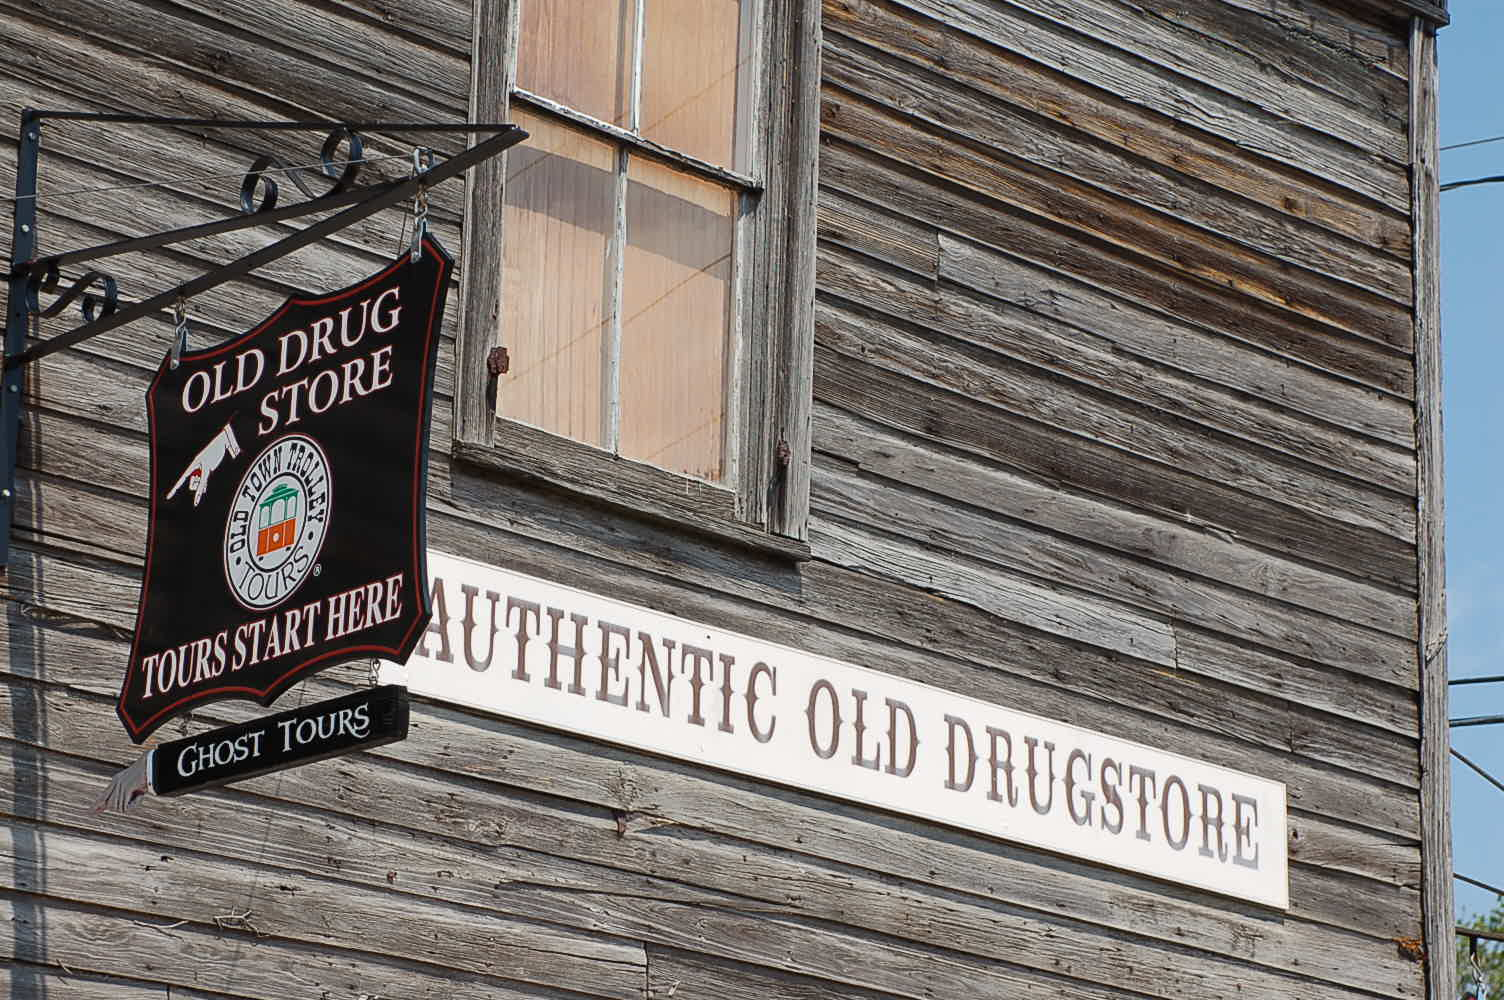 Old Drugstore paranormal